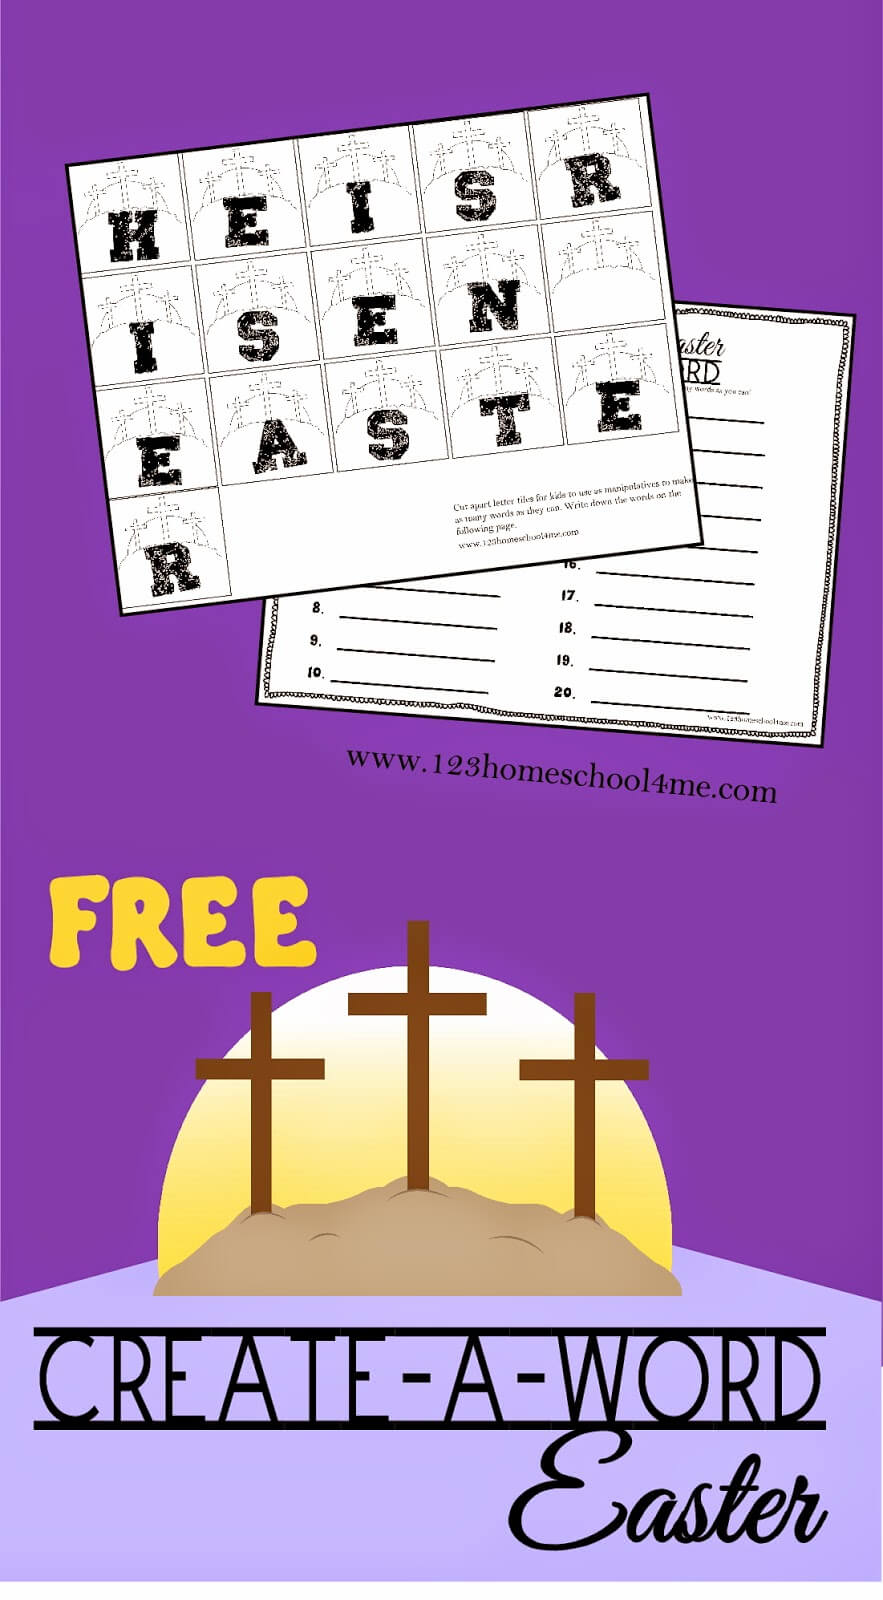 With Easter right around the corner, we decided to add some Eater themed learning to our homeschool! Theseeaster spelling activities are a fun, engaging way to practice spelling with a simple easter worksheet for kids from first grade, 2nd grade, 3rd grdae, 4th grade, 5th grade, and 6th grade students. This cross he is risen Easter printable is perfect for working on spelling with your homeschooler. Simply download pdf file withfree easter workheetsand you are ready to play and learn!